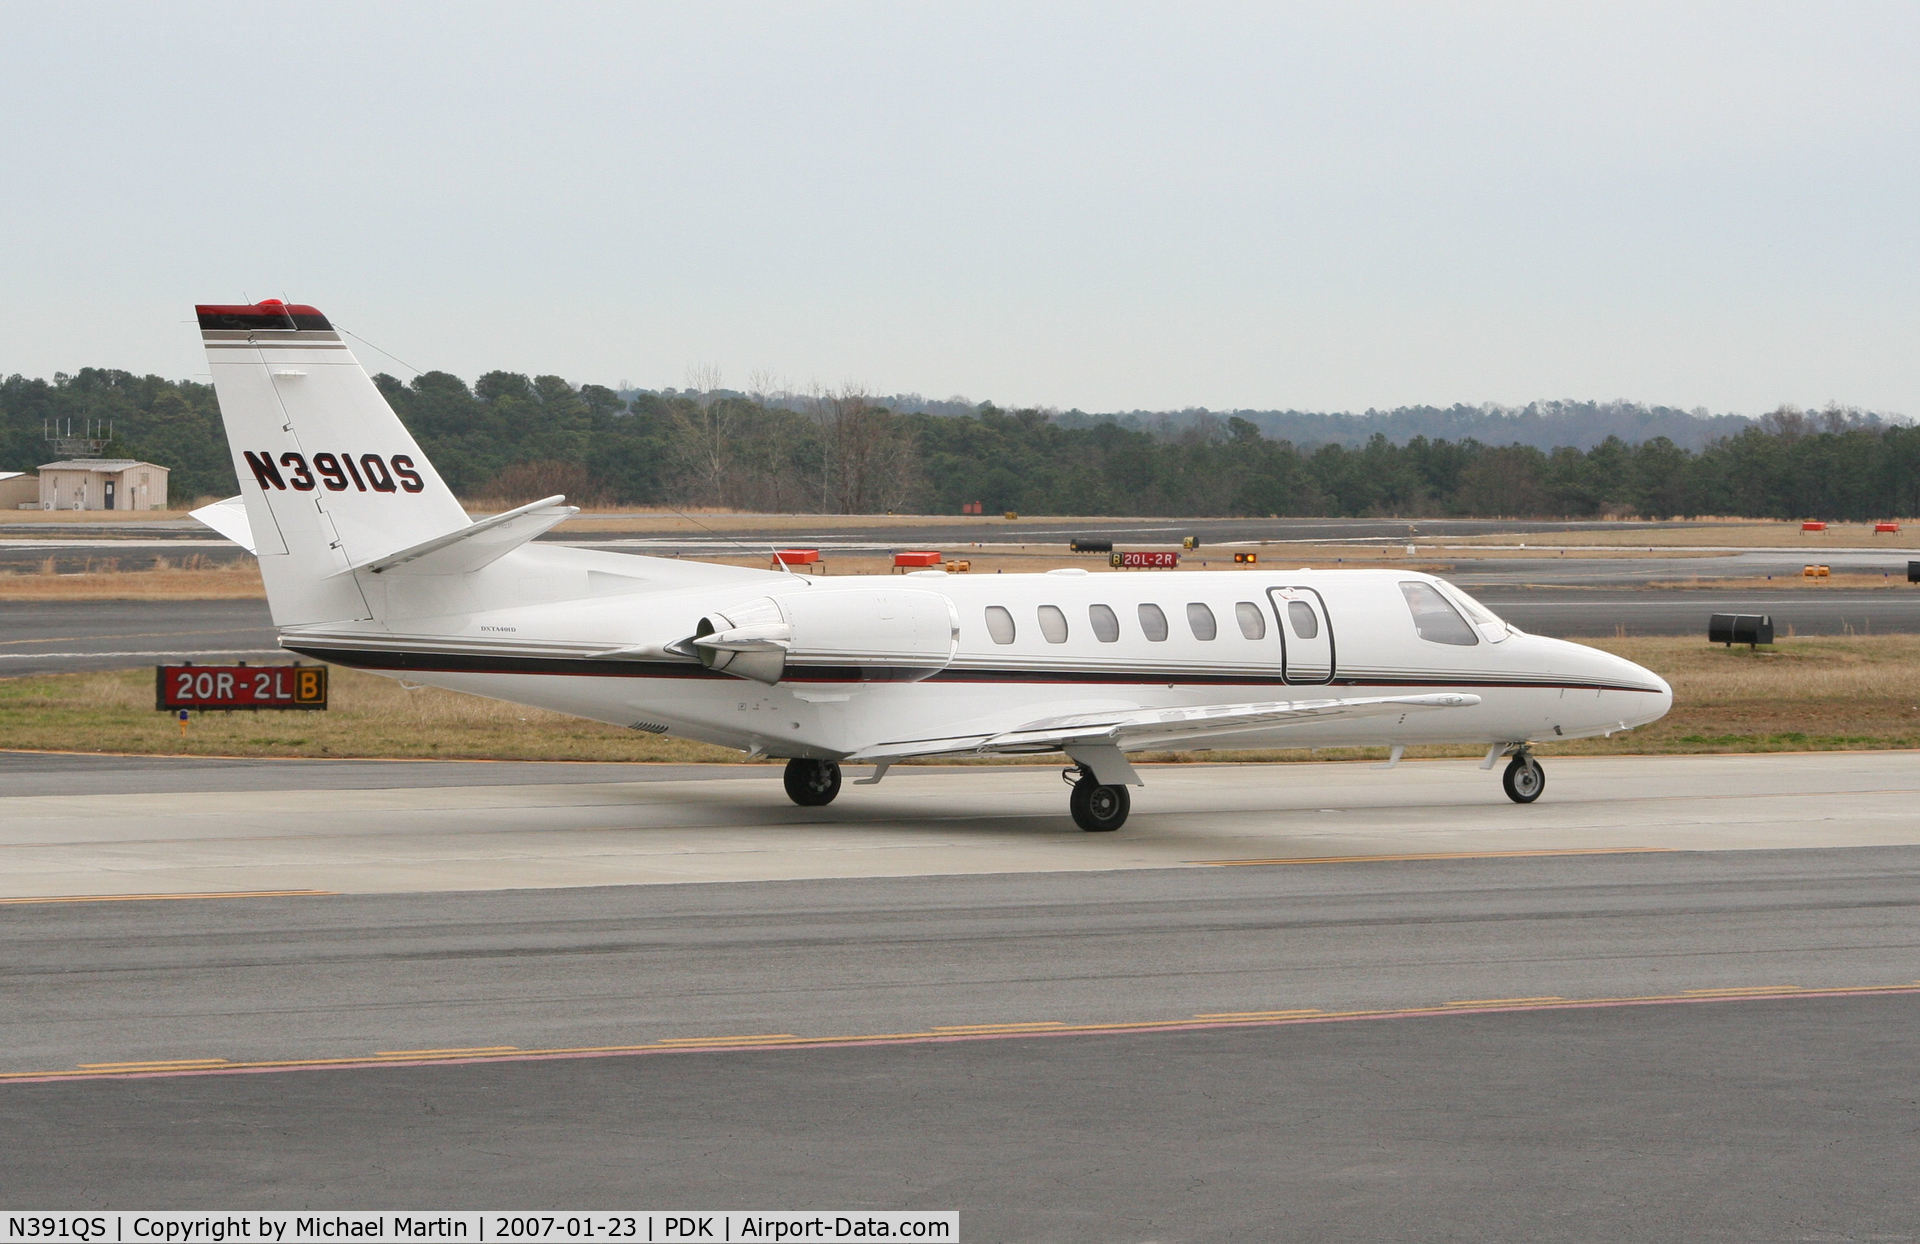 N391QS, 1998 Cessna 560 C/N 560-0493, Taxing to Runway 2R